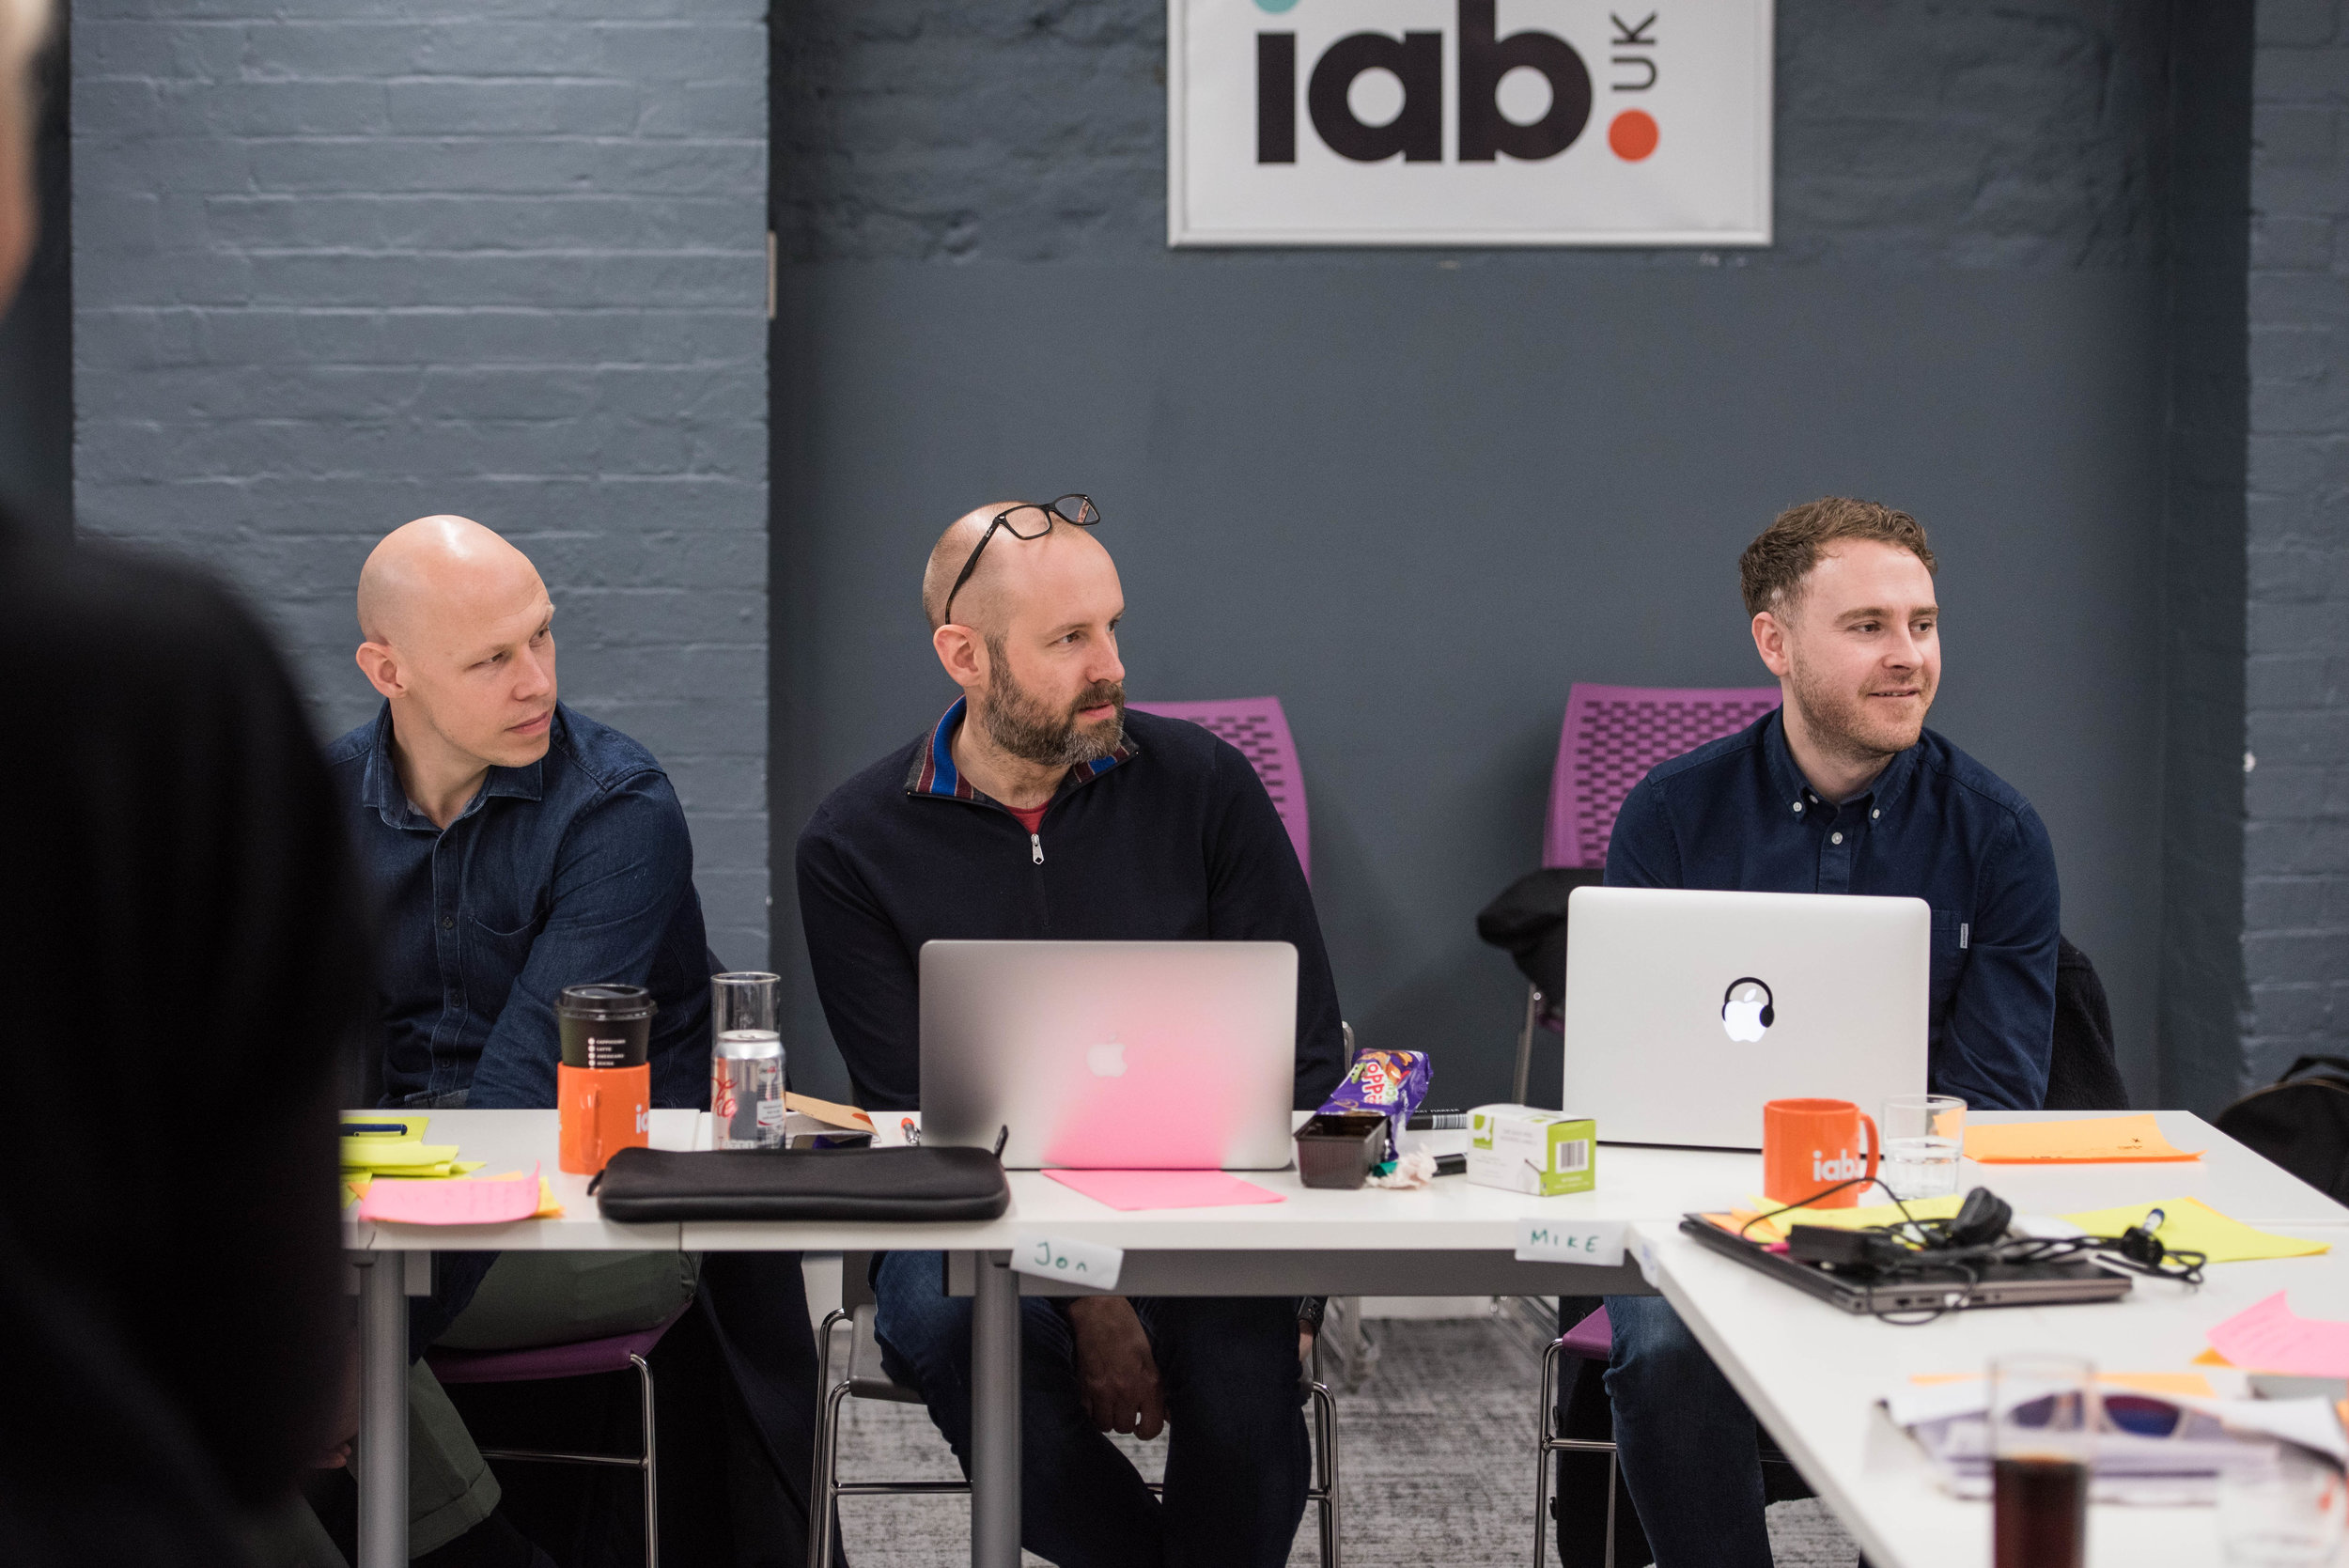 IAB Uk_Incidental Shots_SM (310 of 312).jpg